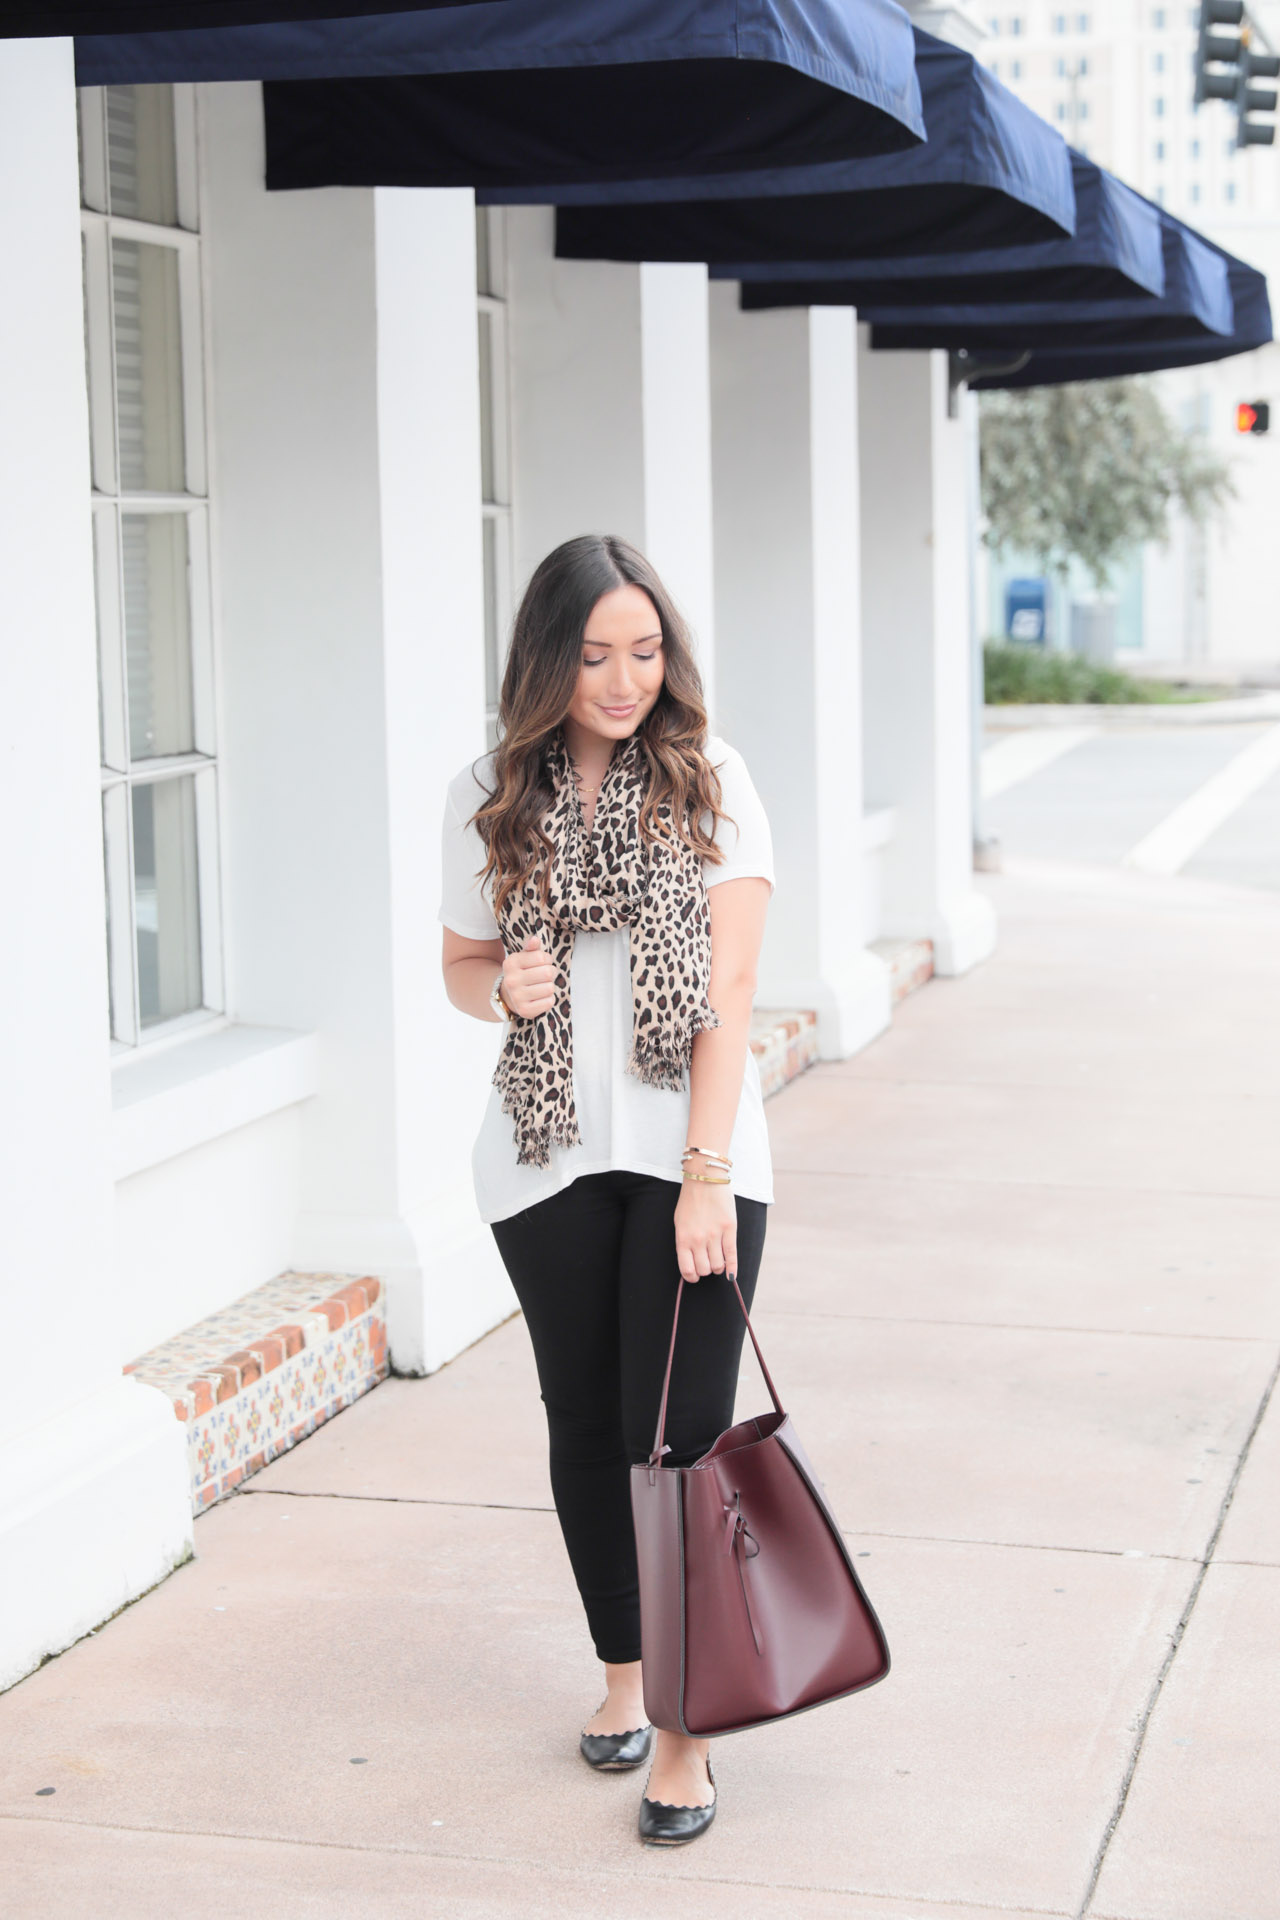 Leopard scarf for fall with oxblood accessories